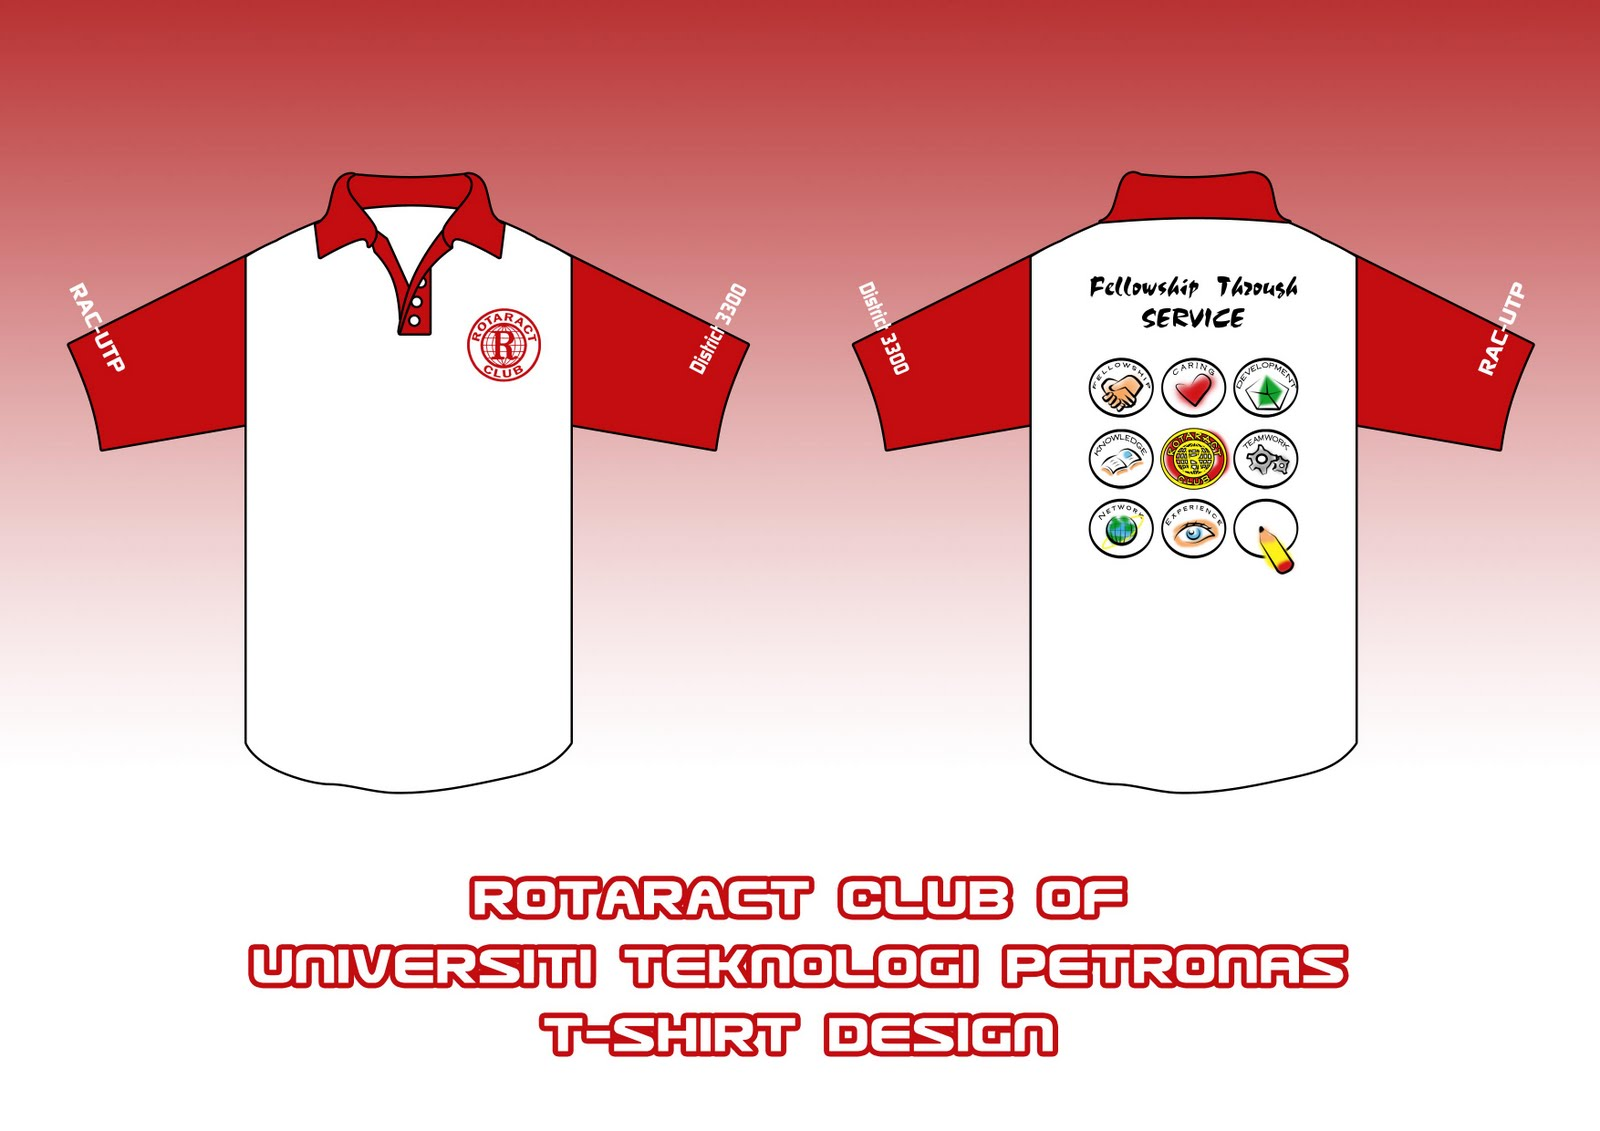 Design t shirt universiti - Racutp Tshirts For Sale We Are Currently Selling Our Racutp T Shirt The Sizes We Have Are 3 M And 1 S Each Will Cost You Rm 25 00 If You Are Interested